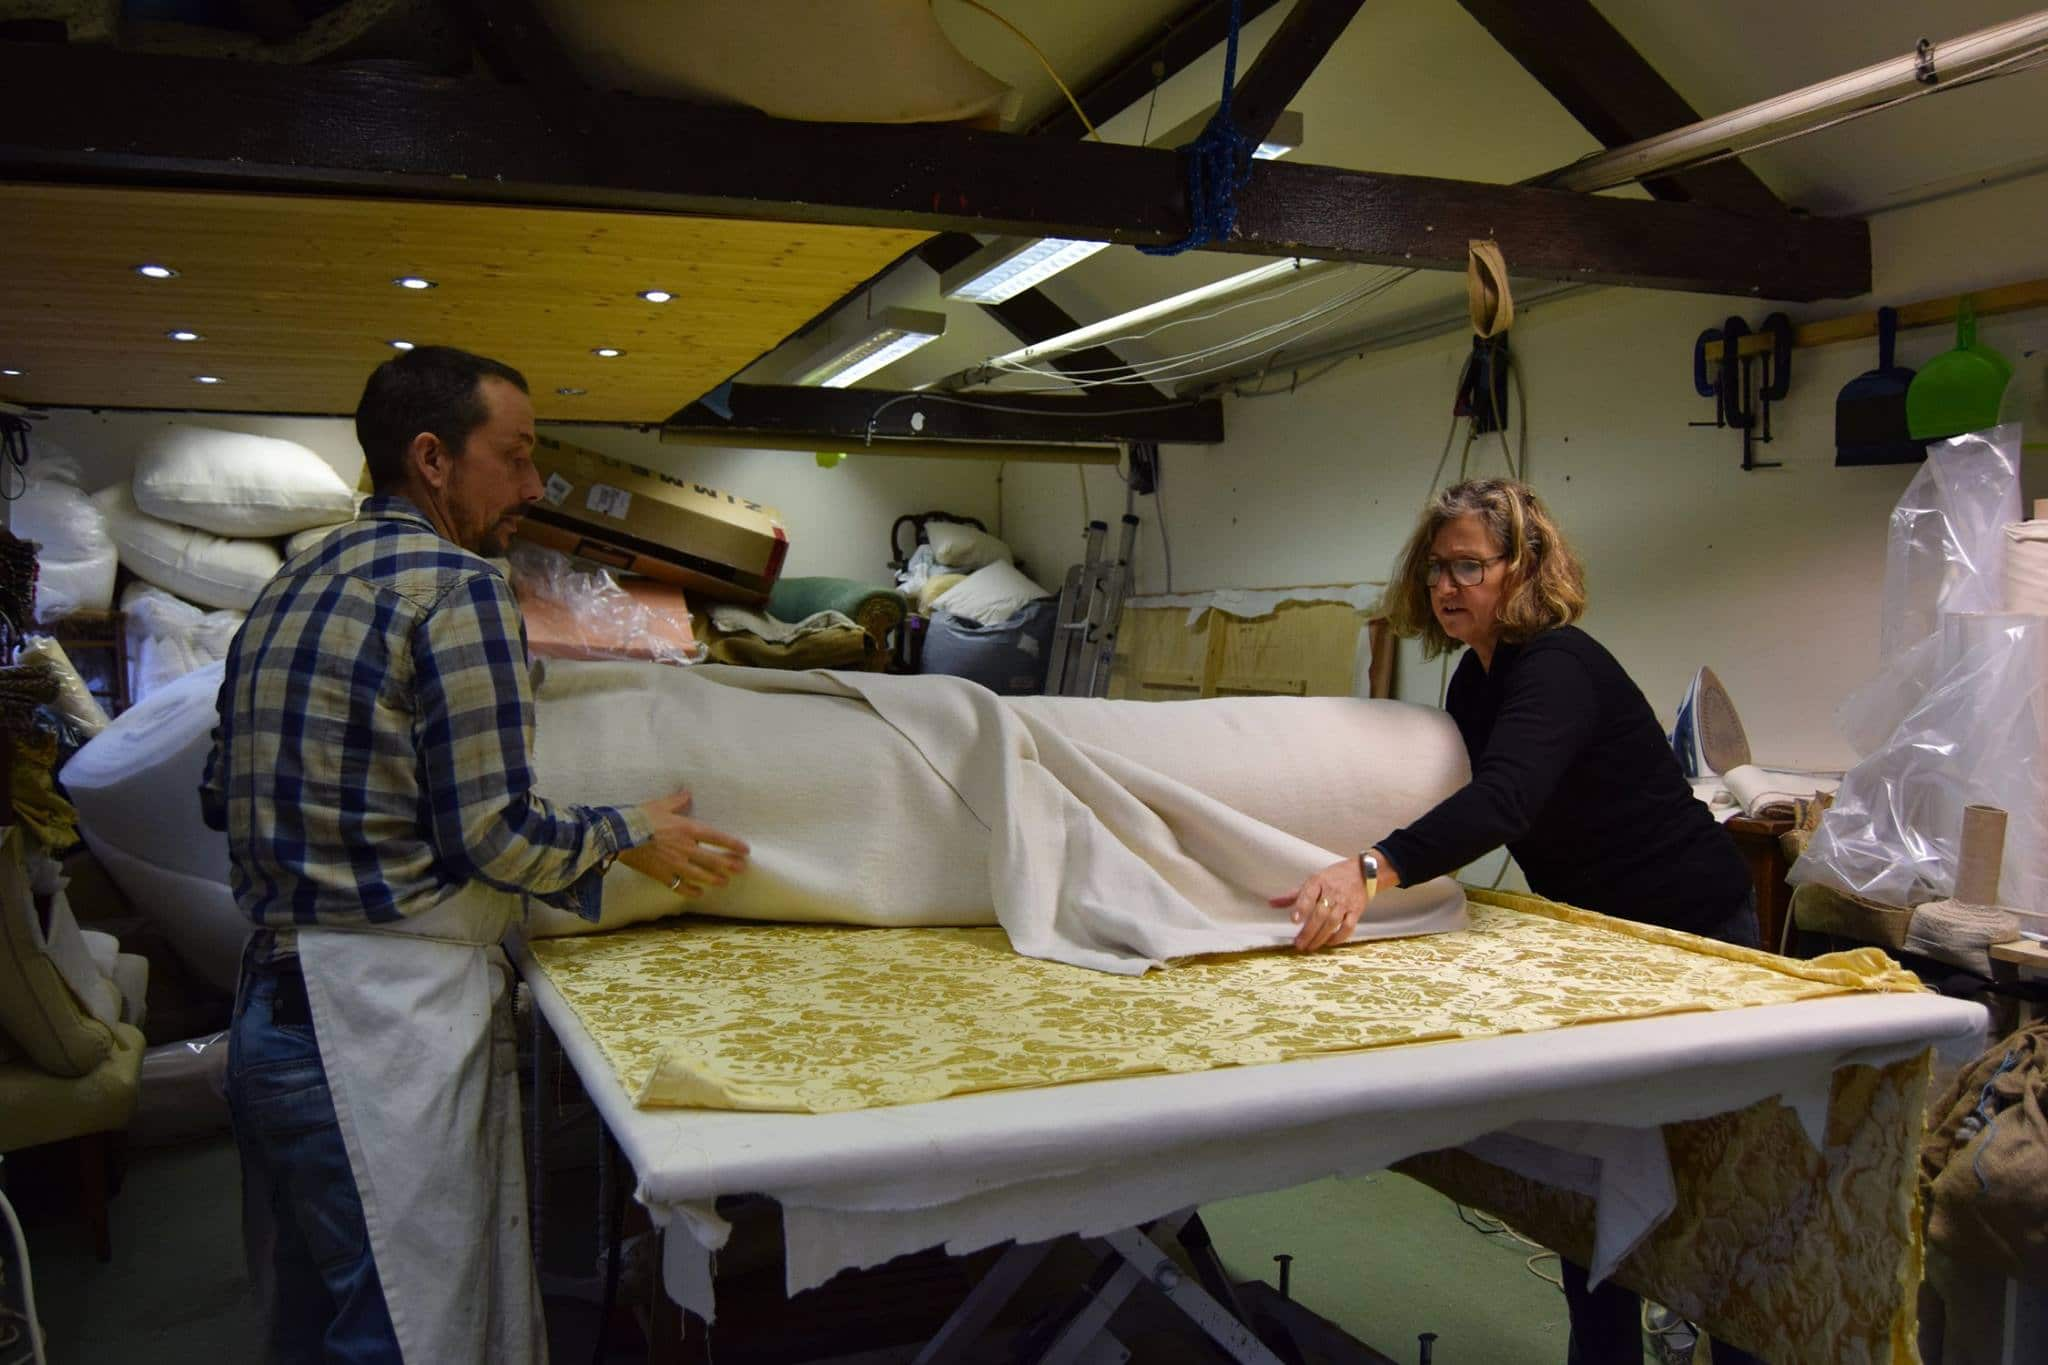 unrolling new roll of fabric